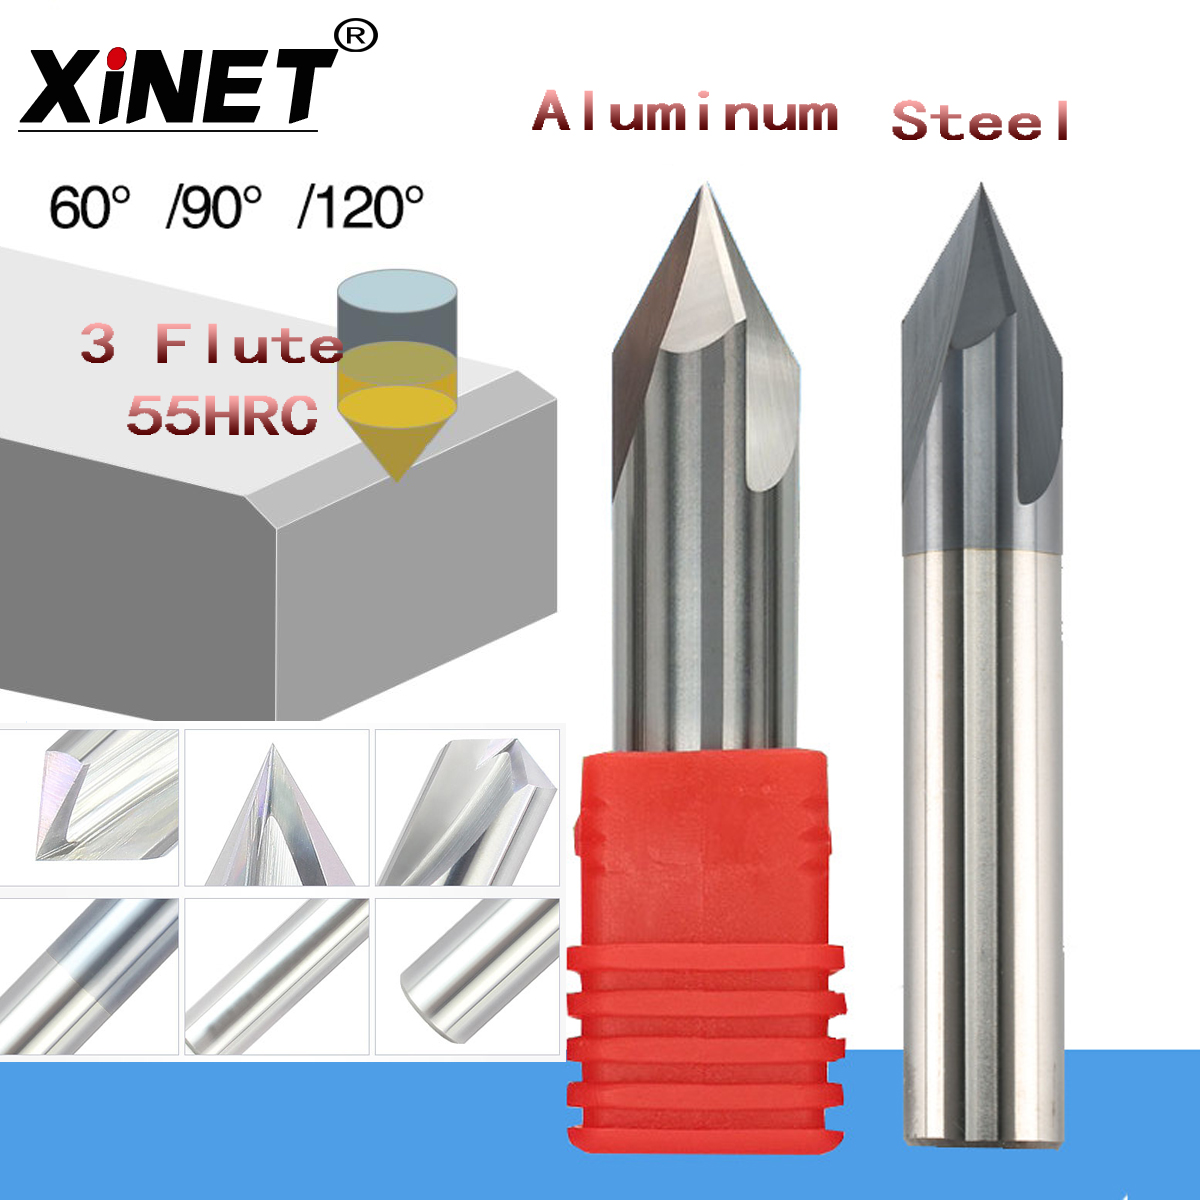 55HRC  CNC Tungsten Carbide Aluminum And Steel Chamfer Milling Cutter,30&45&60 Degree Tialn Coated 3 Flutes End Mill